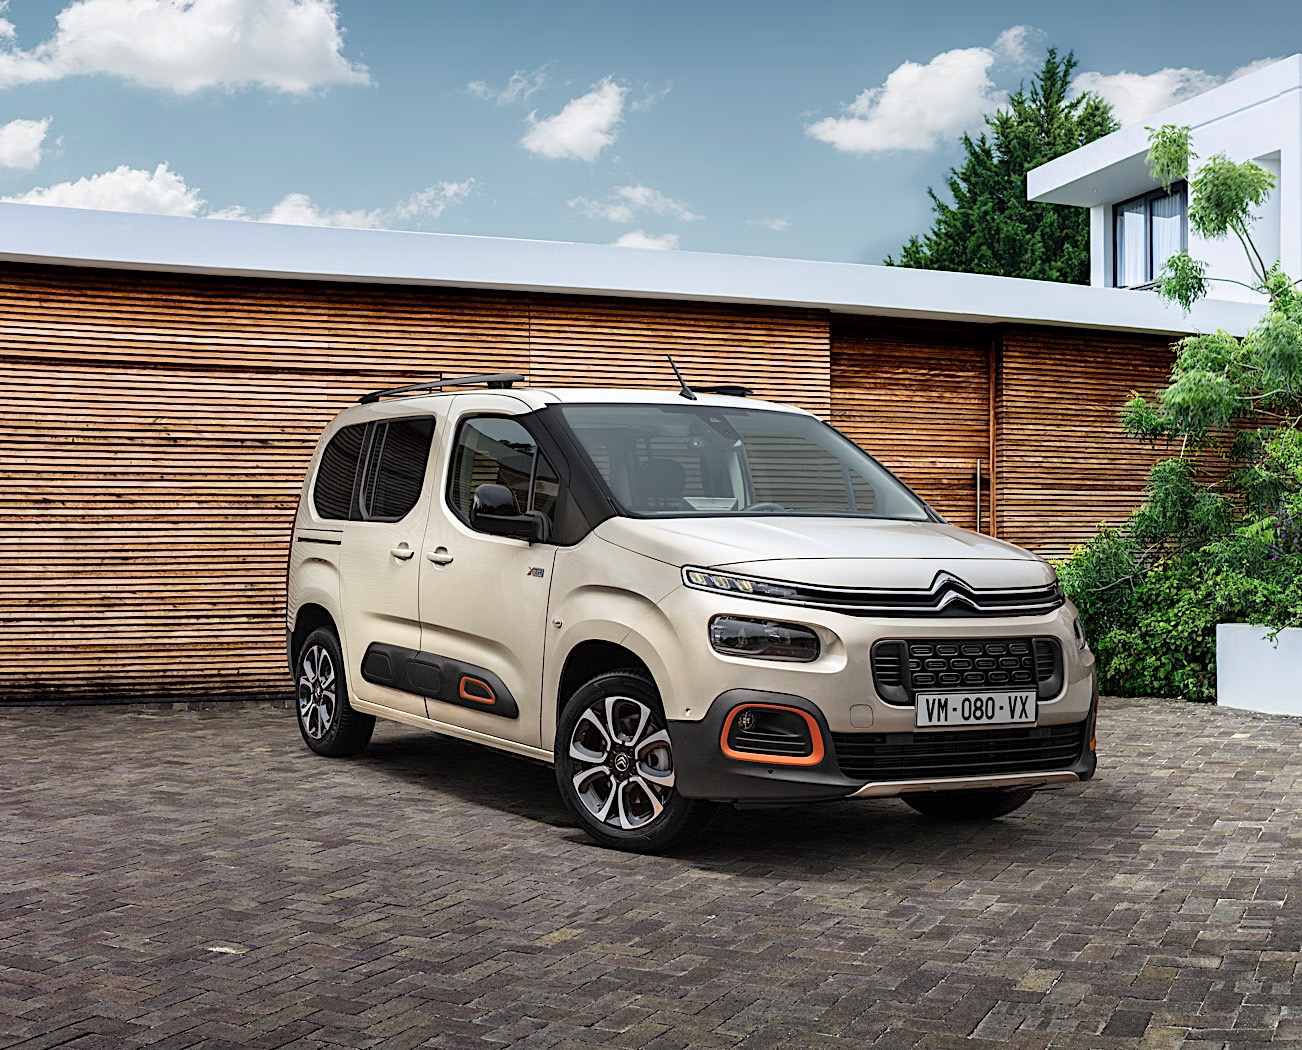 Citroen Berlingo Multispace Unveiled, Gets Major Tech Updates